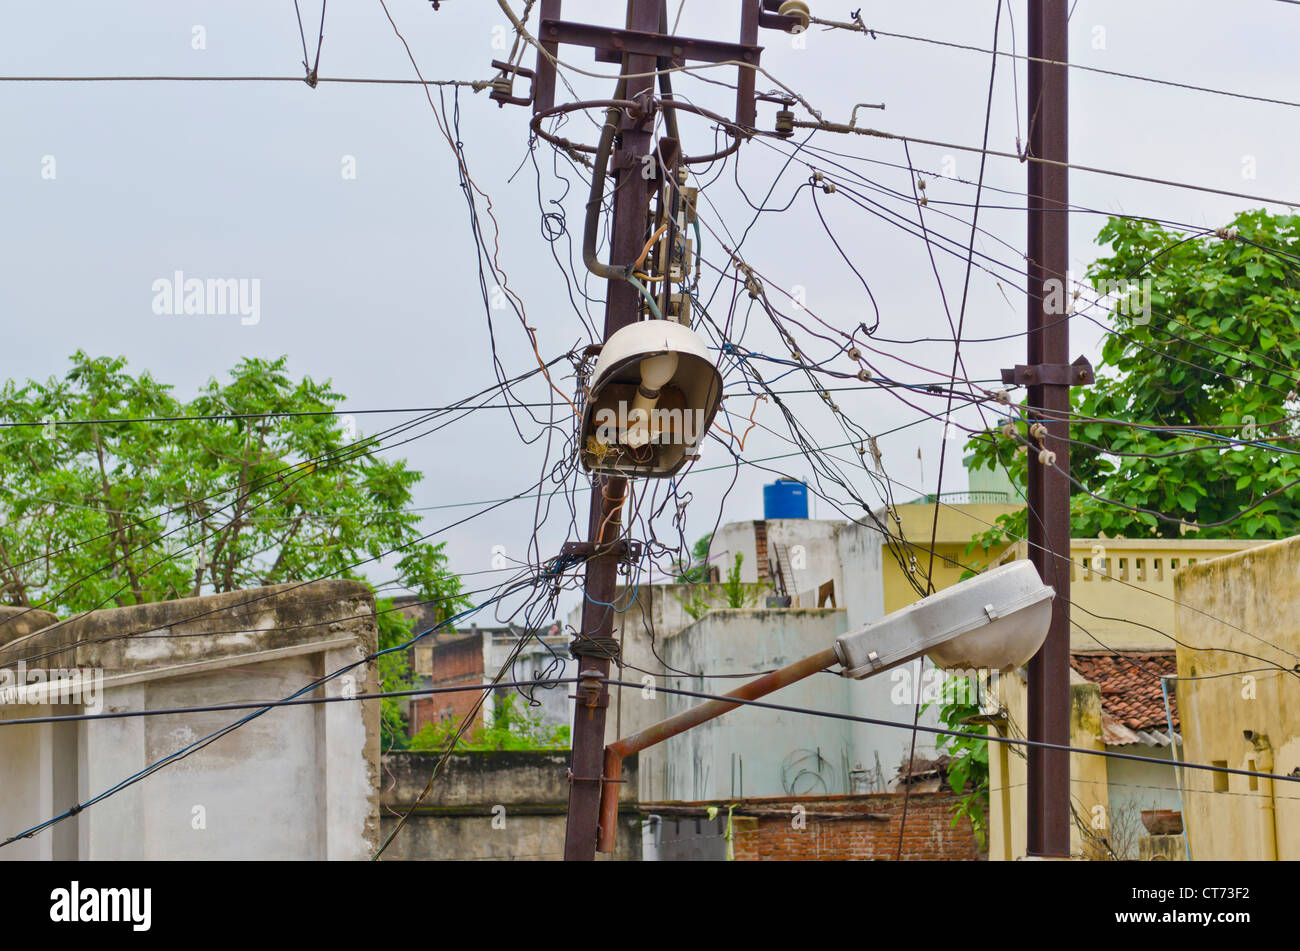 Messy Wiring India Switch Diagram Data Closet Electric Pole With Wires In An Indian Street Stock Photo Rh Alamy Com Cable Rack No